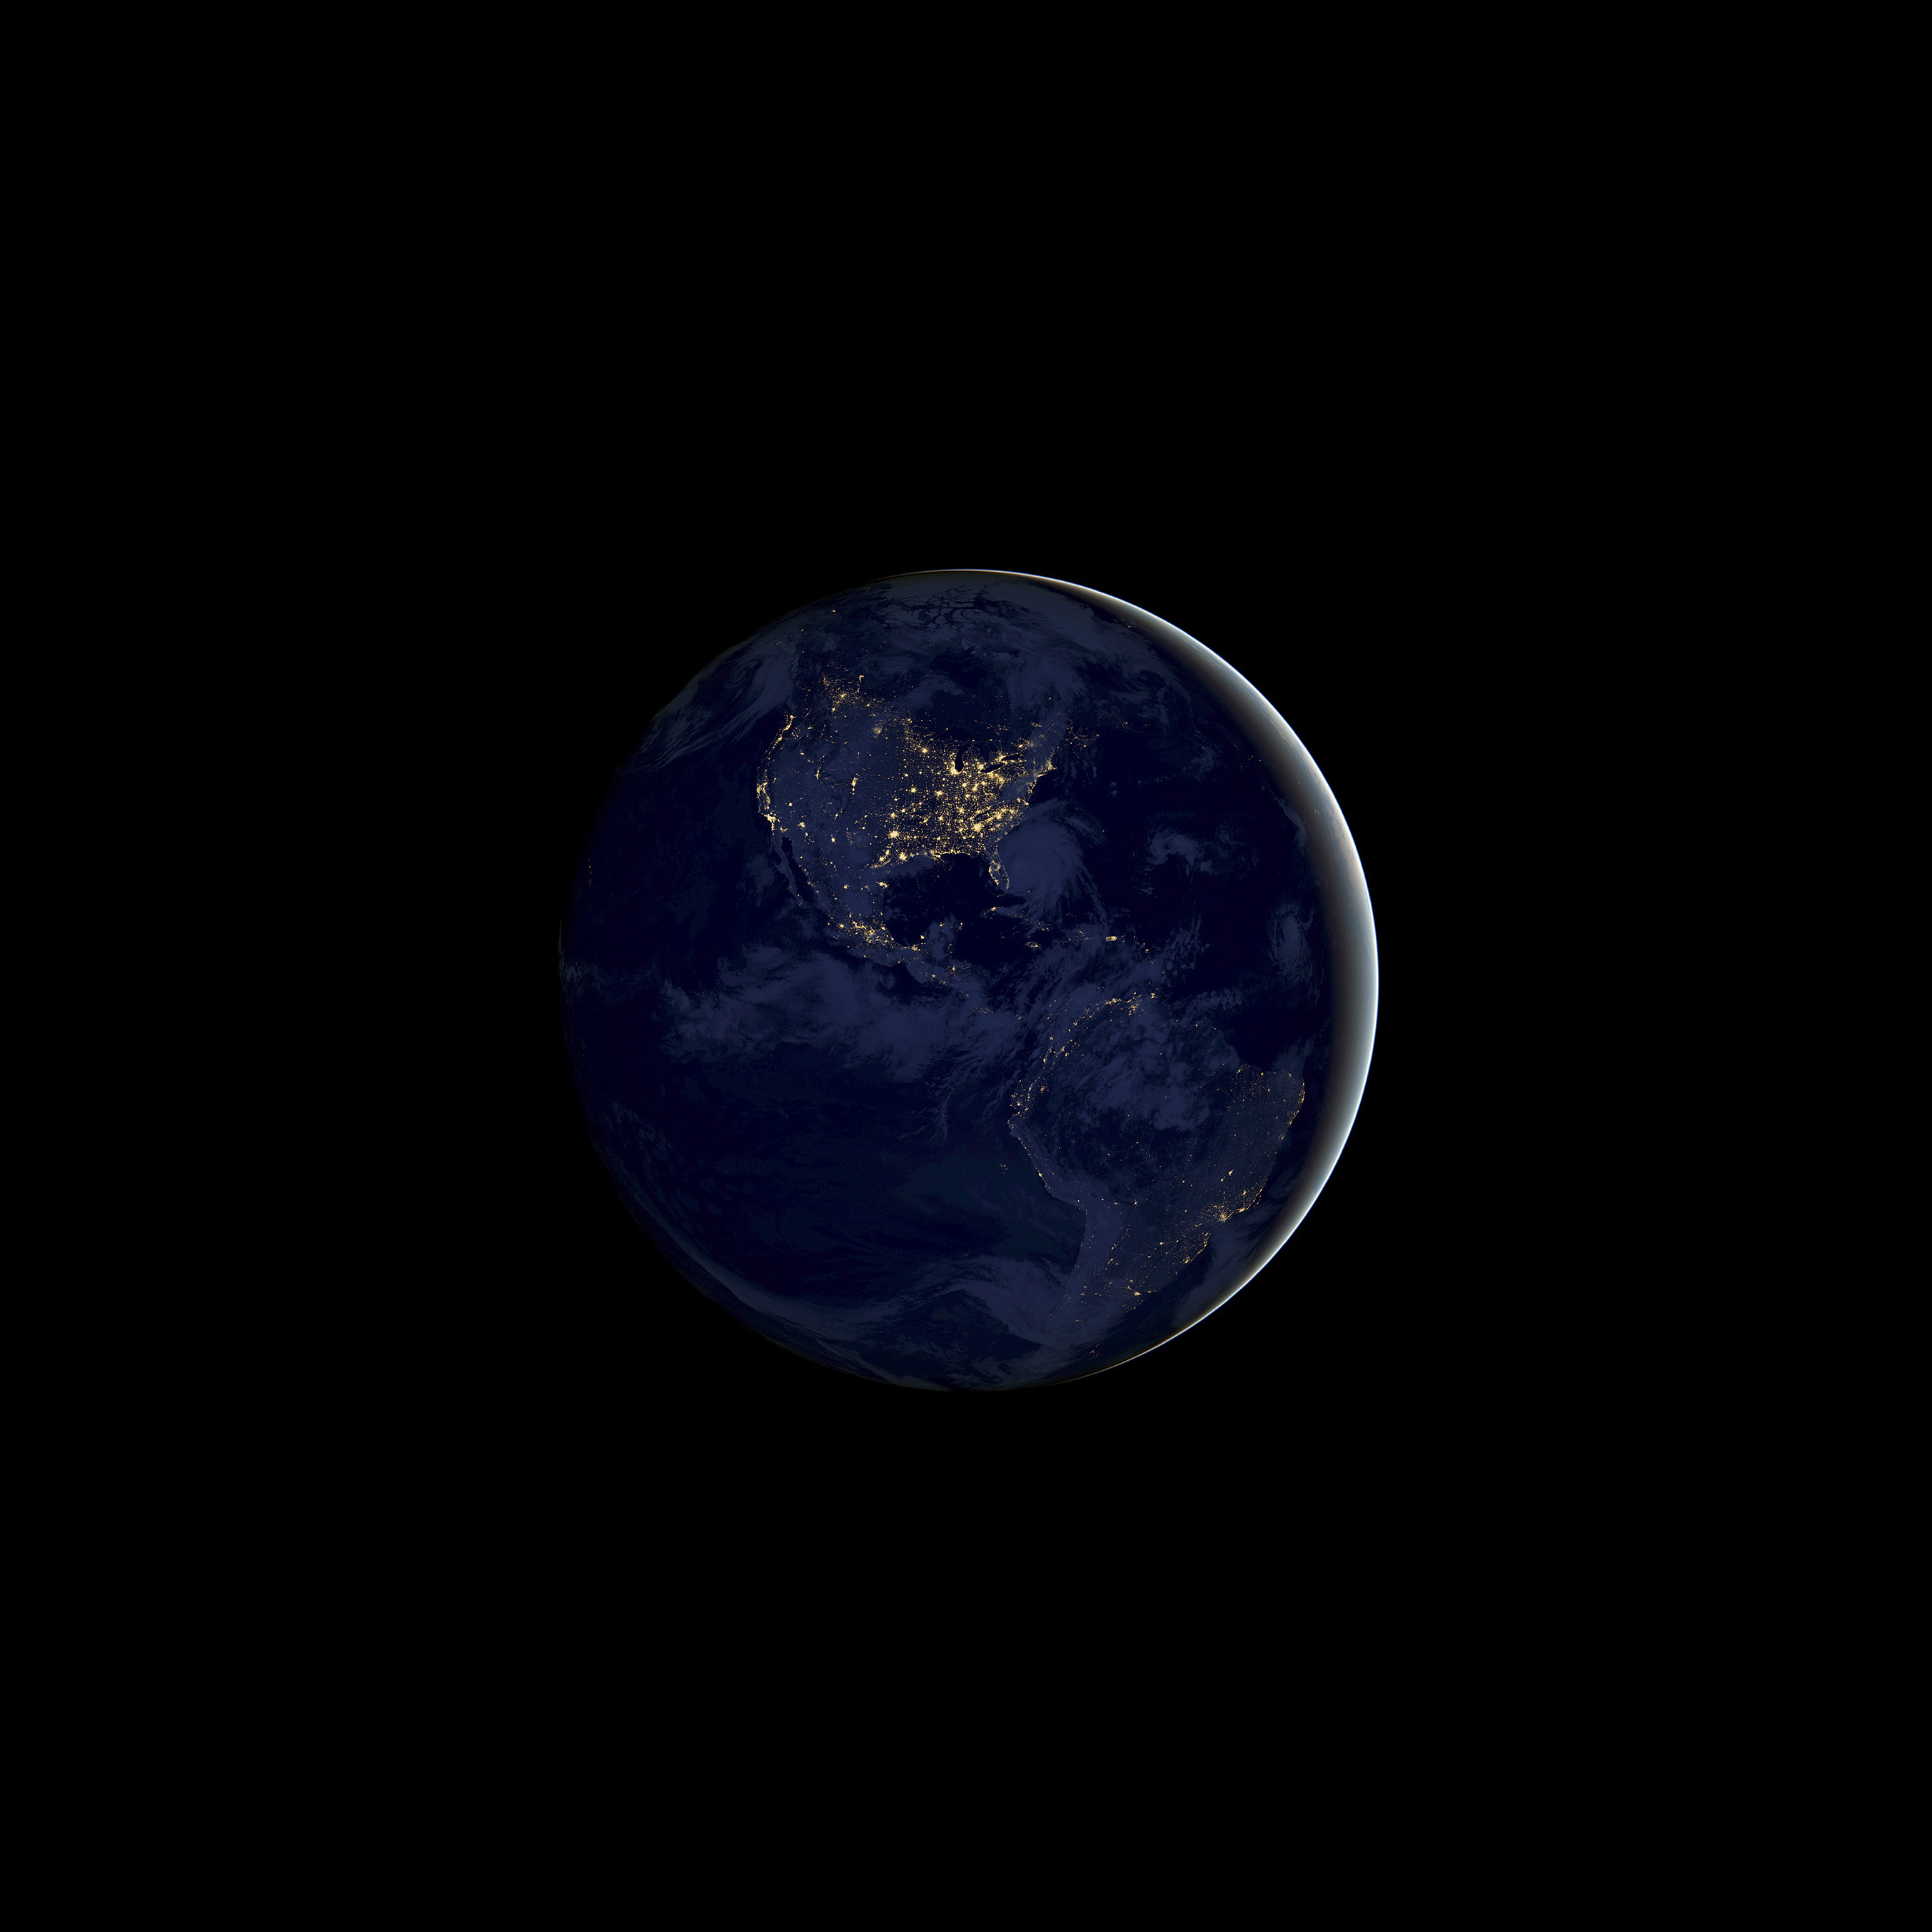 Iphone6 Wallpapers: Earth Night IPhone Wallpaper